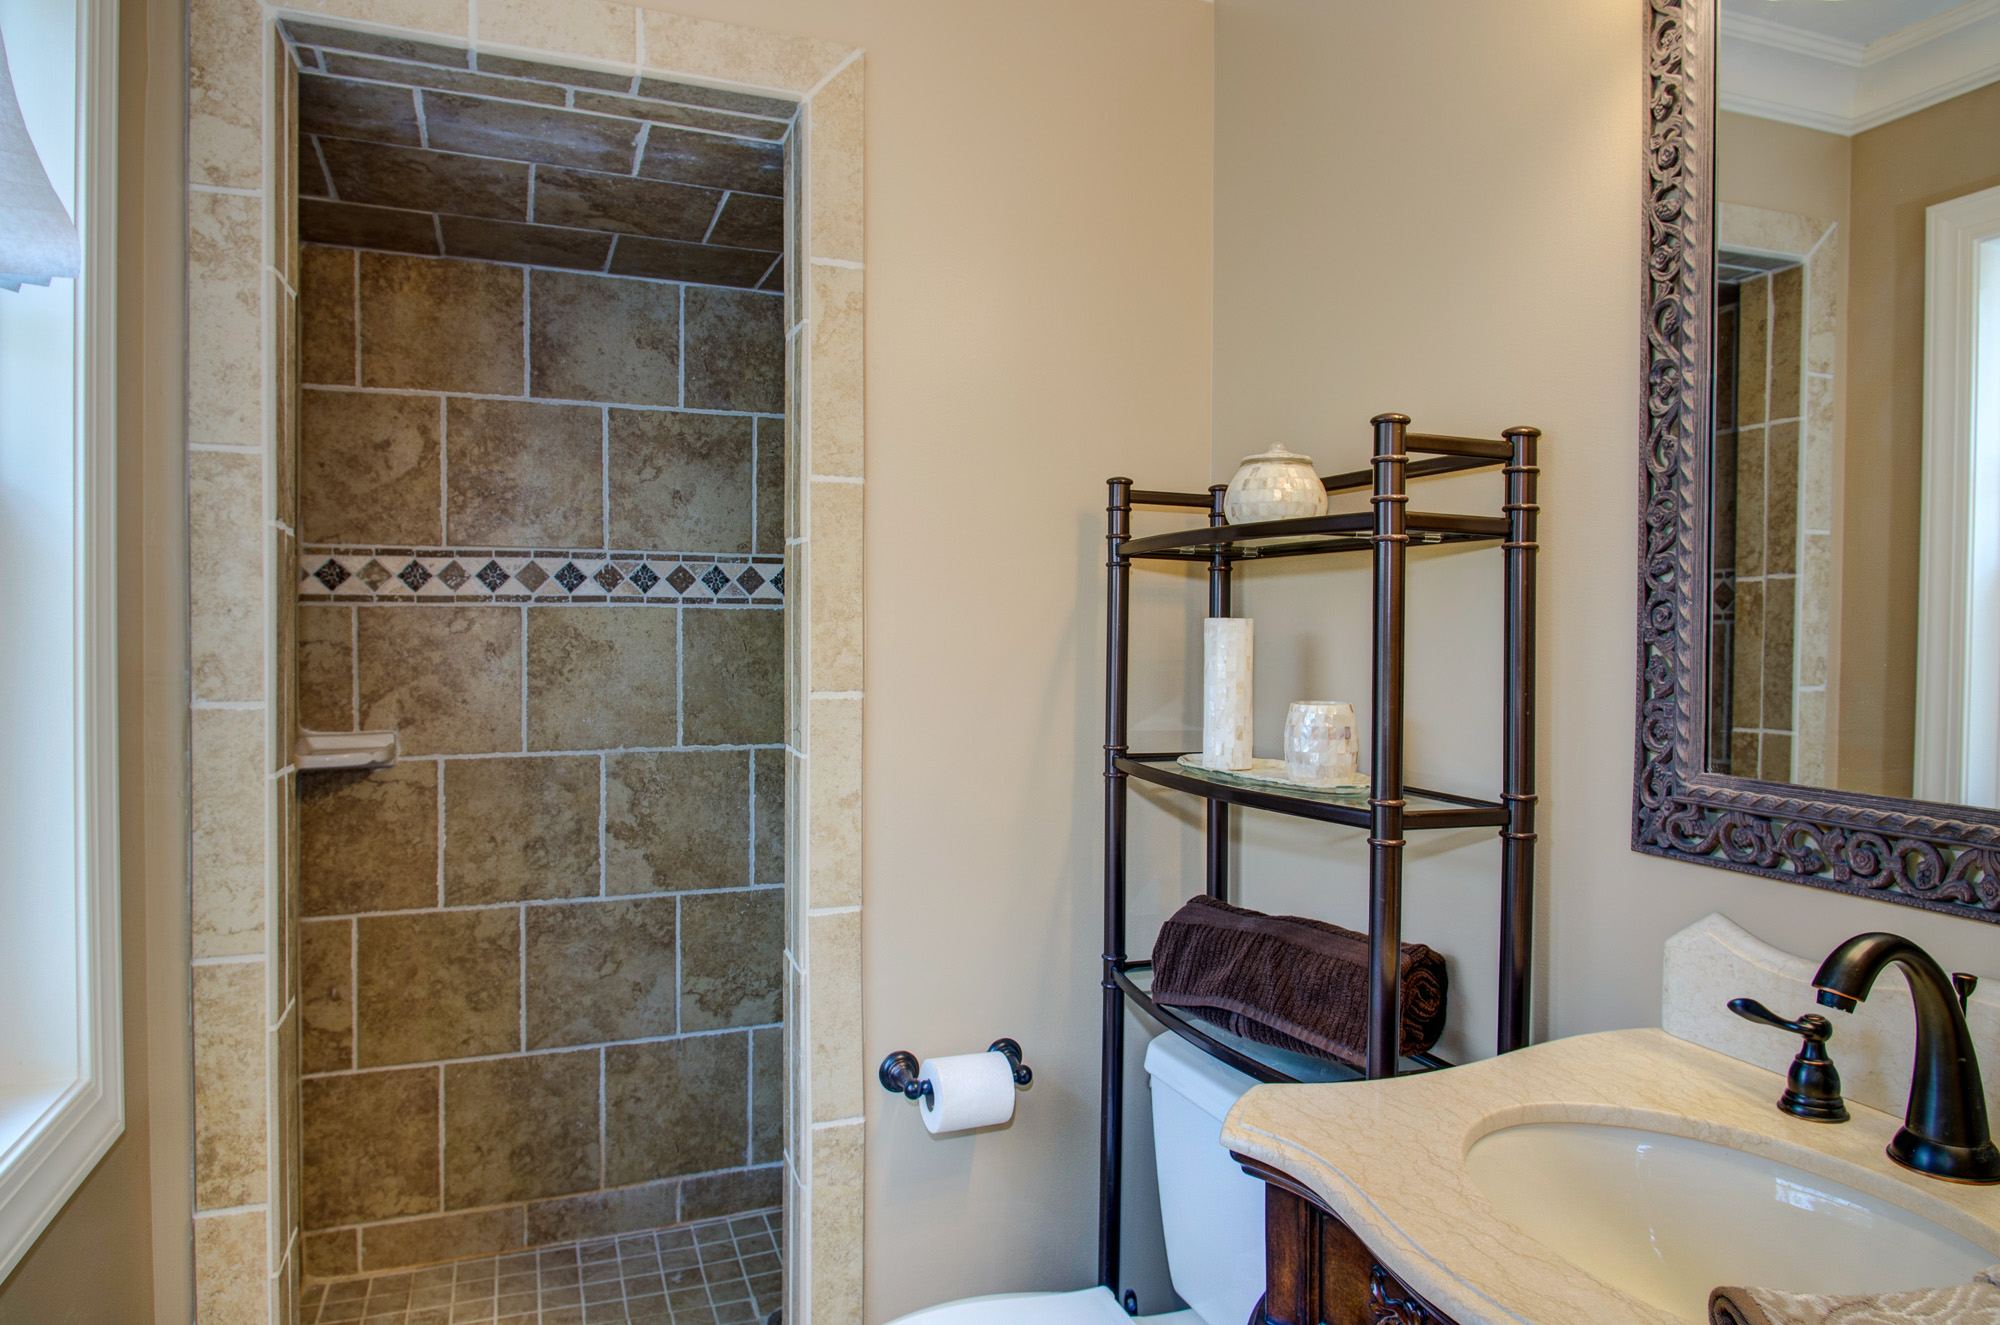 Bathroom Remodeling Durham Nc quality remodeling, renovation and construction services